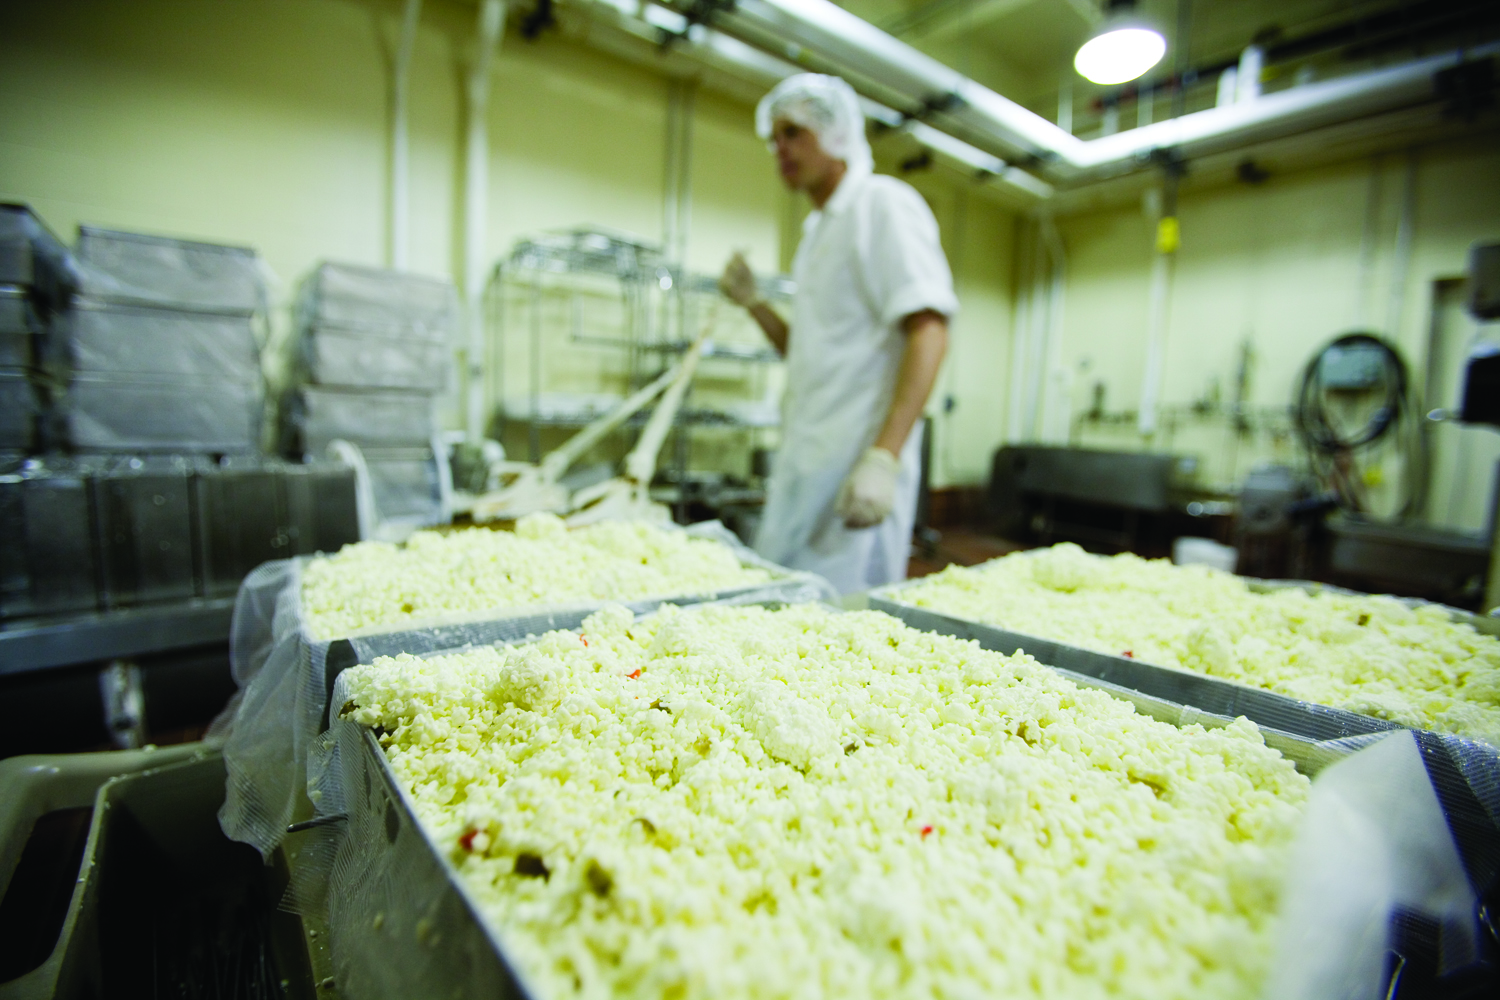 Workers make cheese for the UNL Dairy Store.